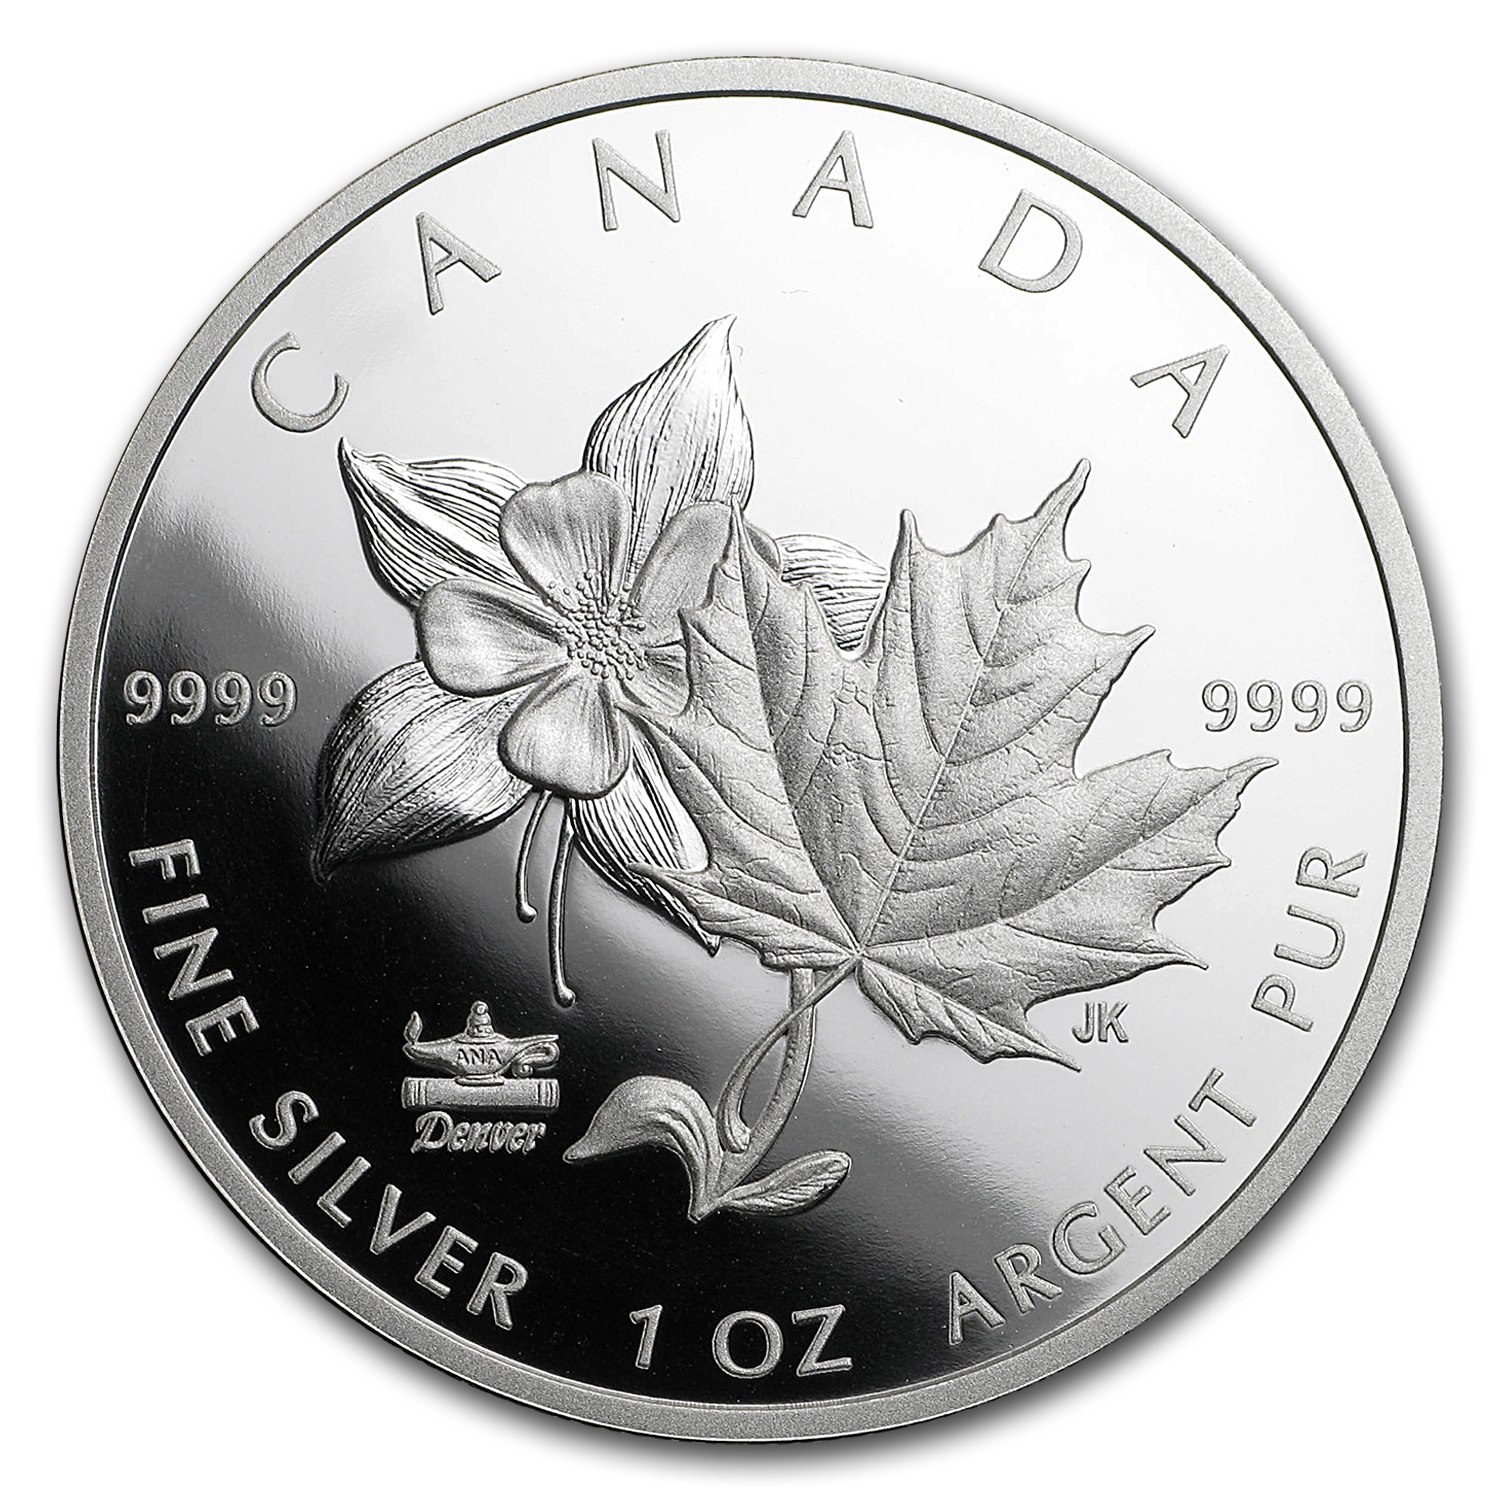 2017 Canada 1 oz Silver $5 ANA World's Fair of Money